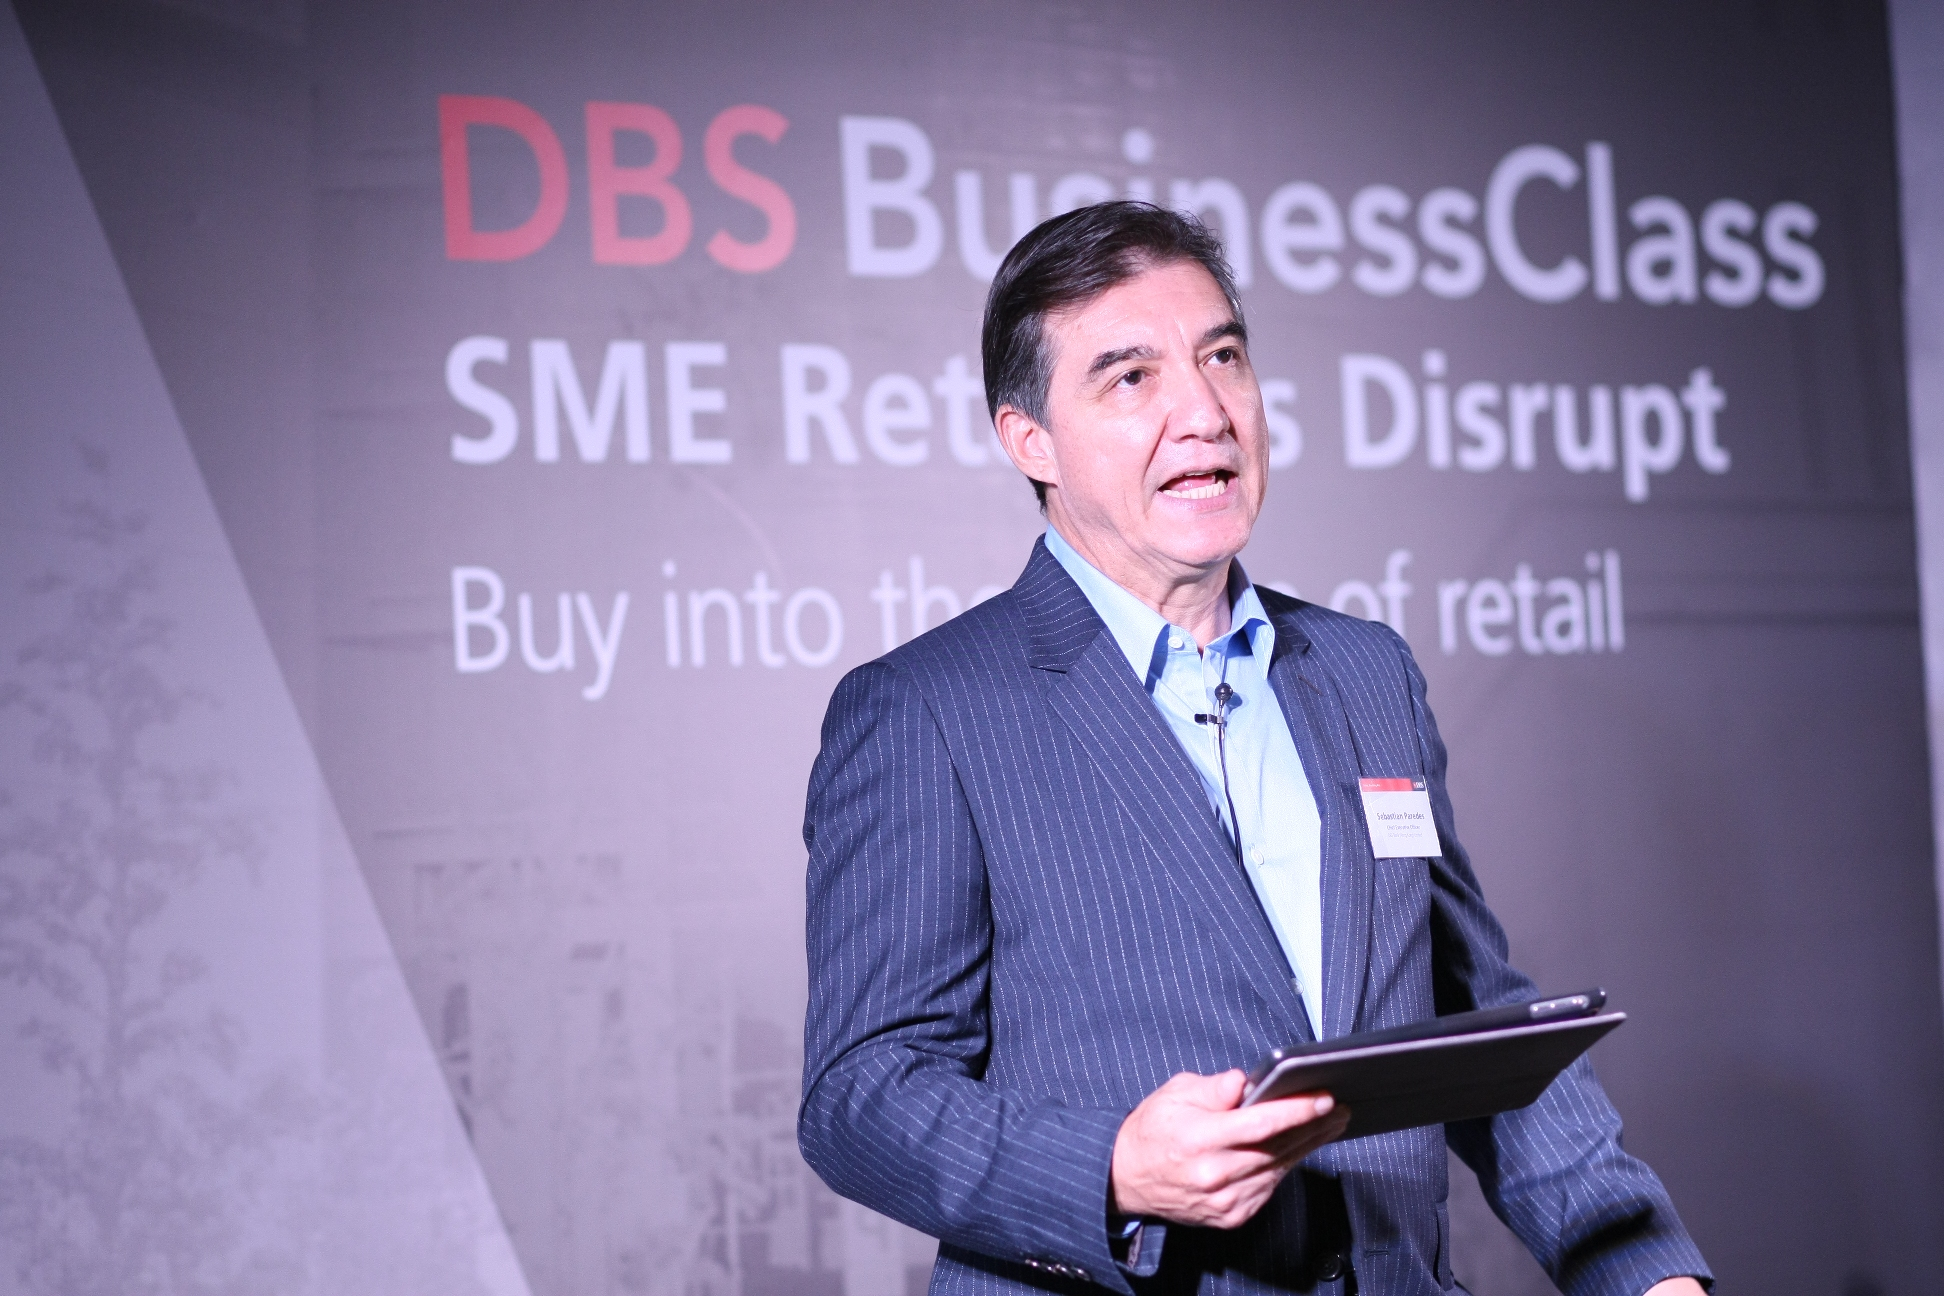 """Speaking at the DBS BusinessClass launch event, Sebastian Paredes, Chief Executive Officer of DBS Bank (Hong Kong) Limited, said, """"At the heart of the DBS BusinessClass programme is our commitment to shape the future of finance by leveraging our pioneering digital innovations and comprehensive understanding of local SME needs. As a leader in SME banking, DBS Hong Kong can provide SMEs with the Asian network and digital edge to capitalise on business opportunities."""""""